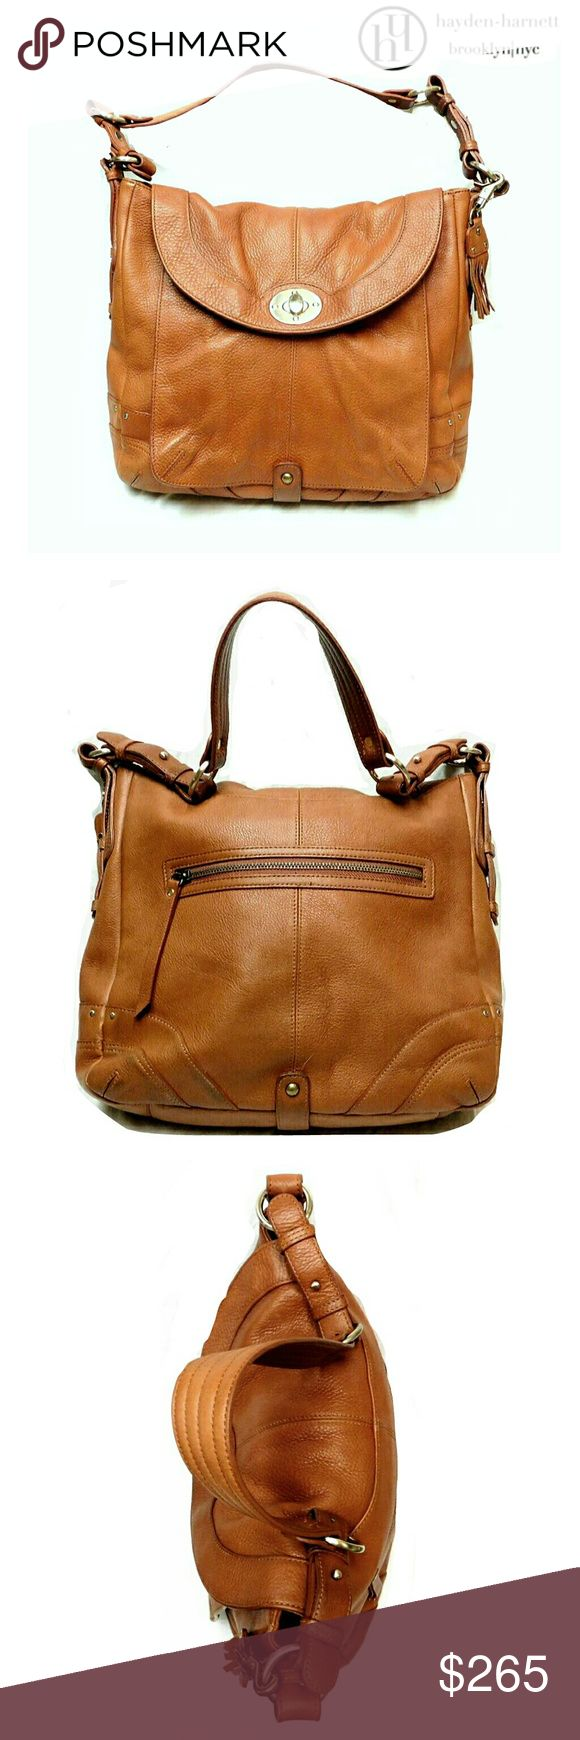 "HAYDEN-HARNETT  by BROOKLYN/NYC FRONT FLAP SATCHEL MAGNIFICENT HAYDEN-HARNETT BY BROOKLYN/NYC FRONT FLAP SATCHEL Pre-Loved   HH is Well Known for Their Well Made & Sturdy Design Bags....and This is One of Them! Genuine Leather  Gold Brass Hardware Front Flap w/Turn Key Spacious Interior w/Zipper Cmpntt  w/3 Slip Pkts Very Good Condition w/One Small Spot on Bottom (water?)   Approx Meas;    L   12"" (apprx)    H   11"" (Top to Bttm Seam)    Drop   10"" (non-adj)  Colors May Not be Exact due to…"